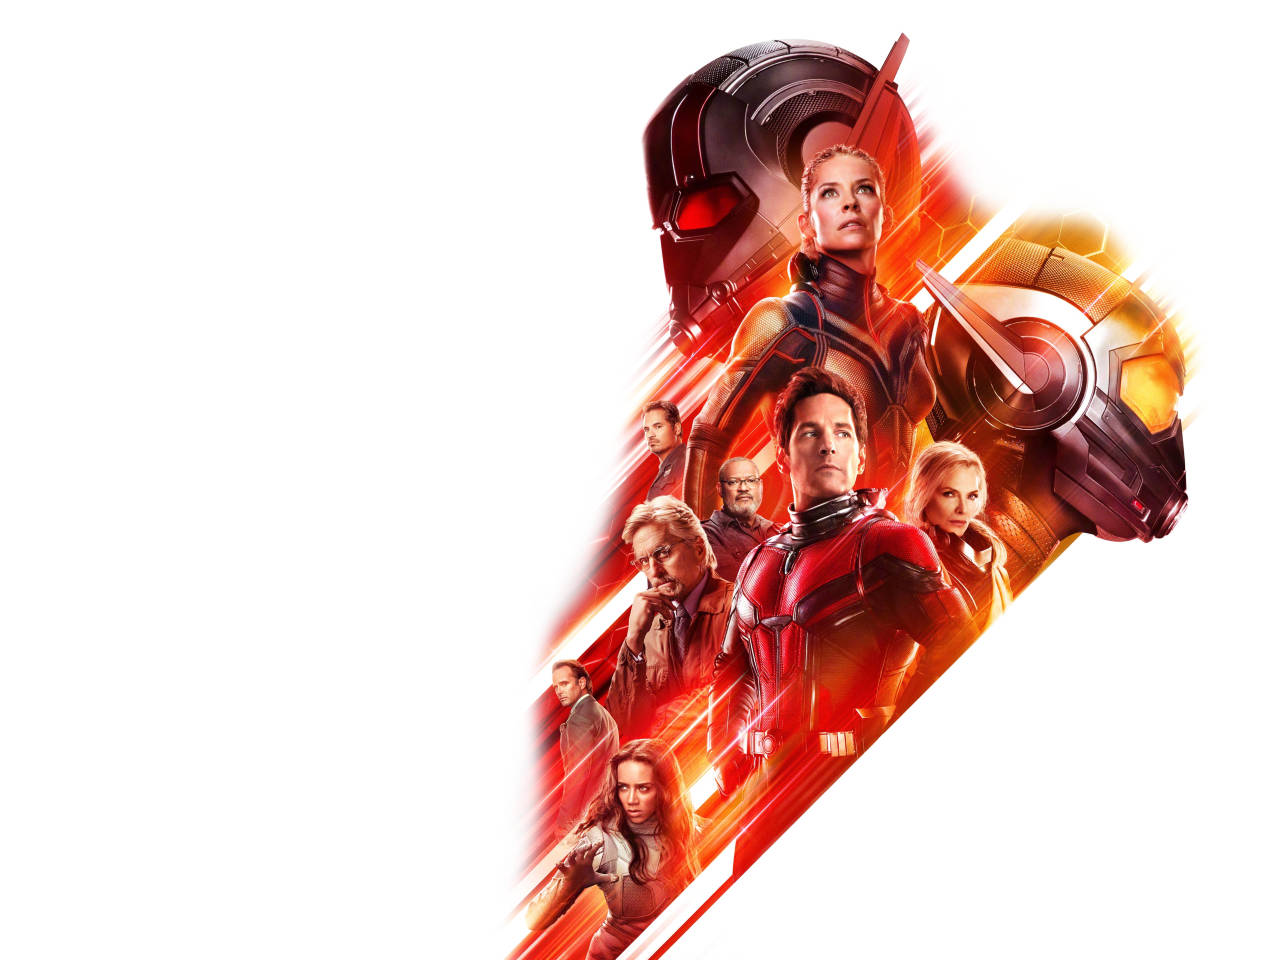 Ant Man And The Wasp Wallpaper: Ant-man And The Wasp 2018 Poster, HD 8K Wallpaper